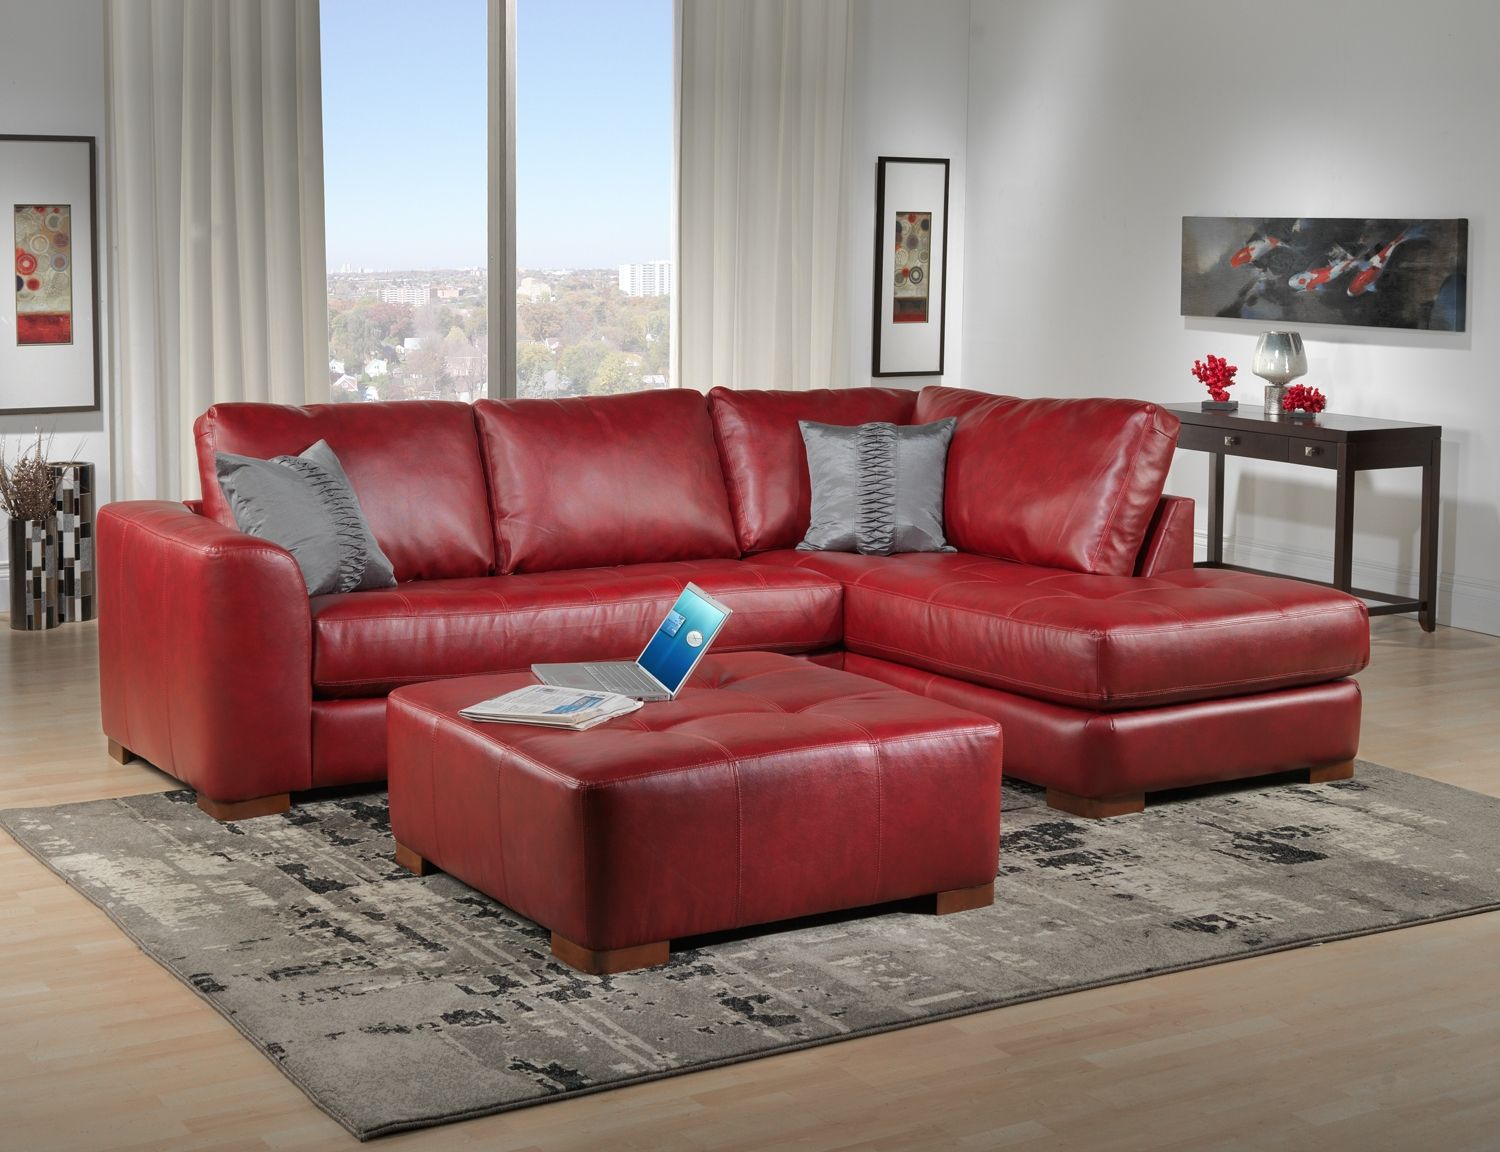 Living room furniture the naples iv collection naples iv 2 pc sectional